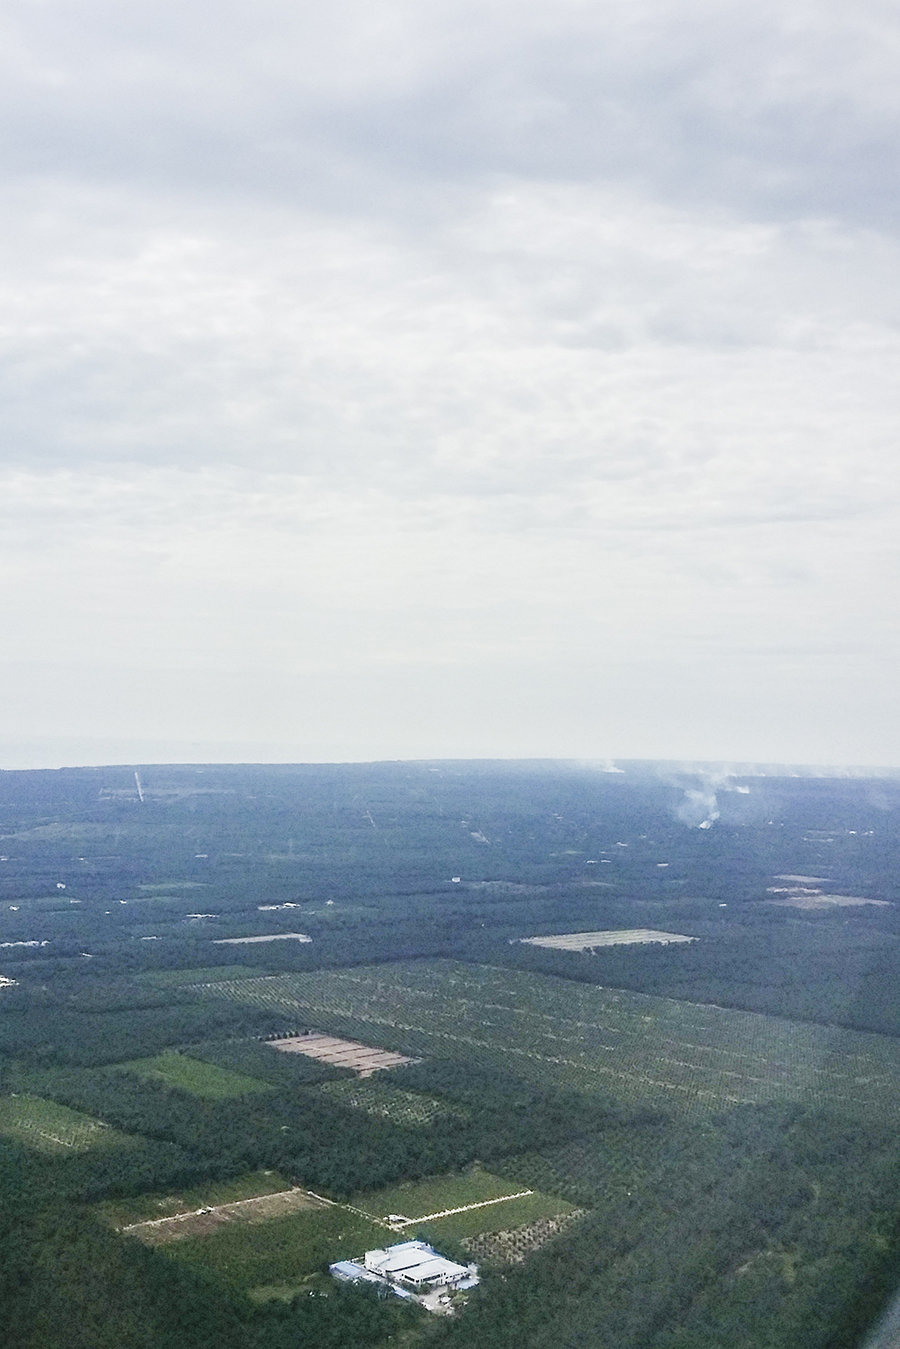 Smoky spot among greens from the plane.